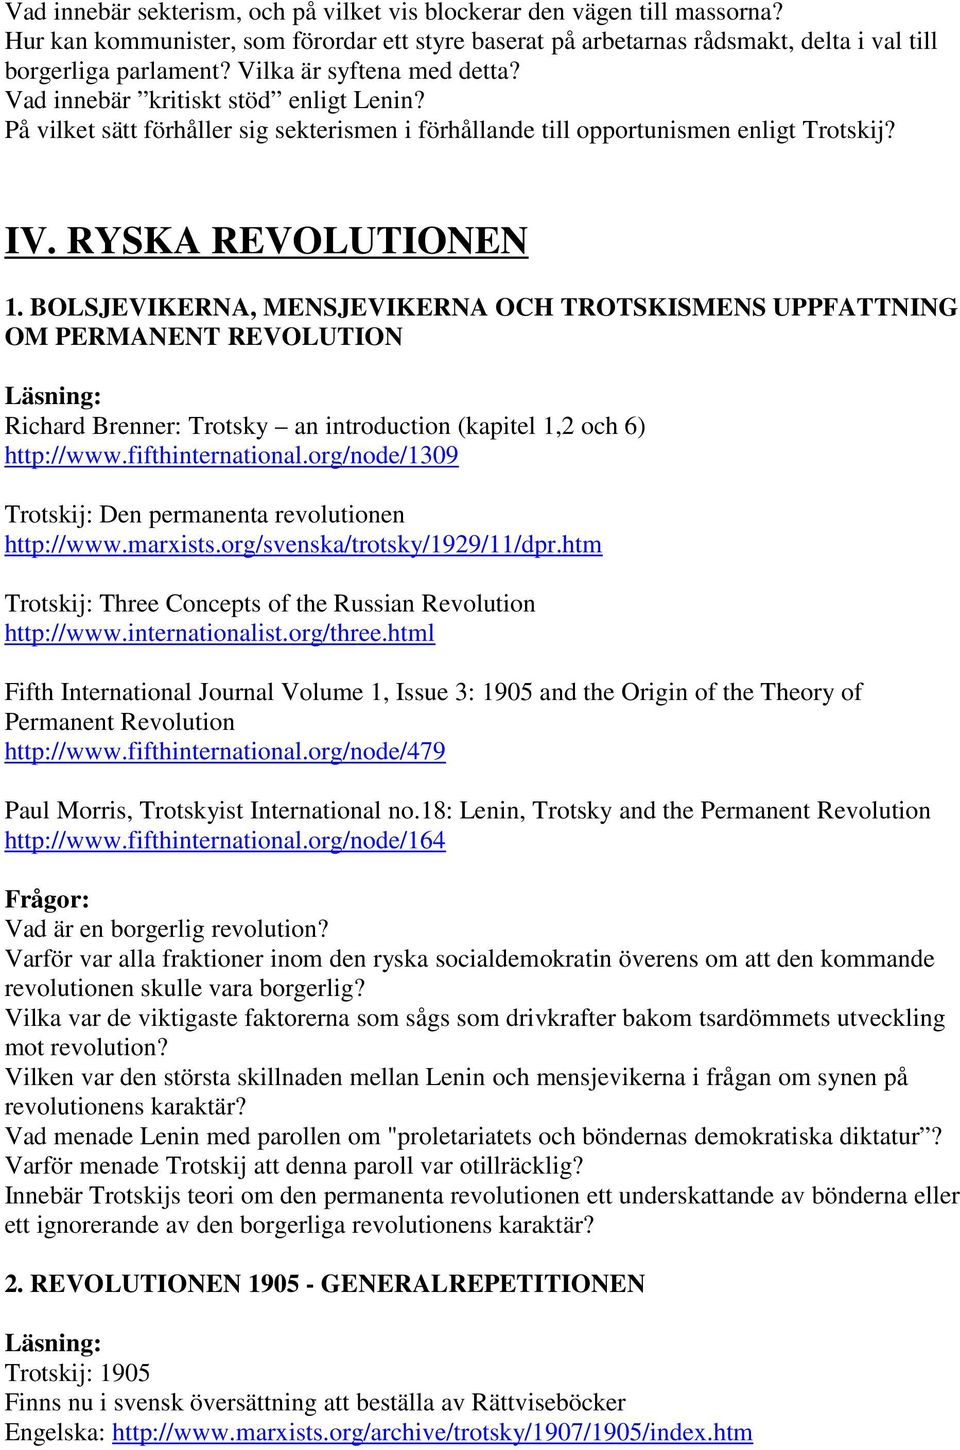 BOLSJEVIKERNA, MENSJEVIKERNA OCH TROTSKISMENS UPPFATTNING OM PERMANENT REVOLUTION Richard Brenner: Trotsky an introduction (kapitel 1,2 och 6) http://www.fifthinternational.